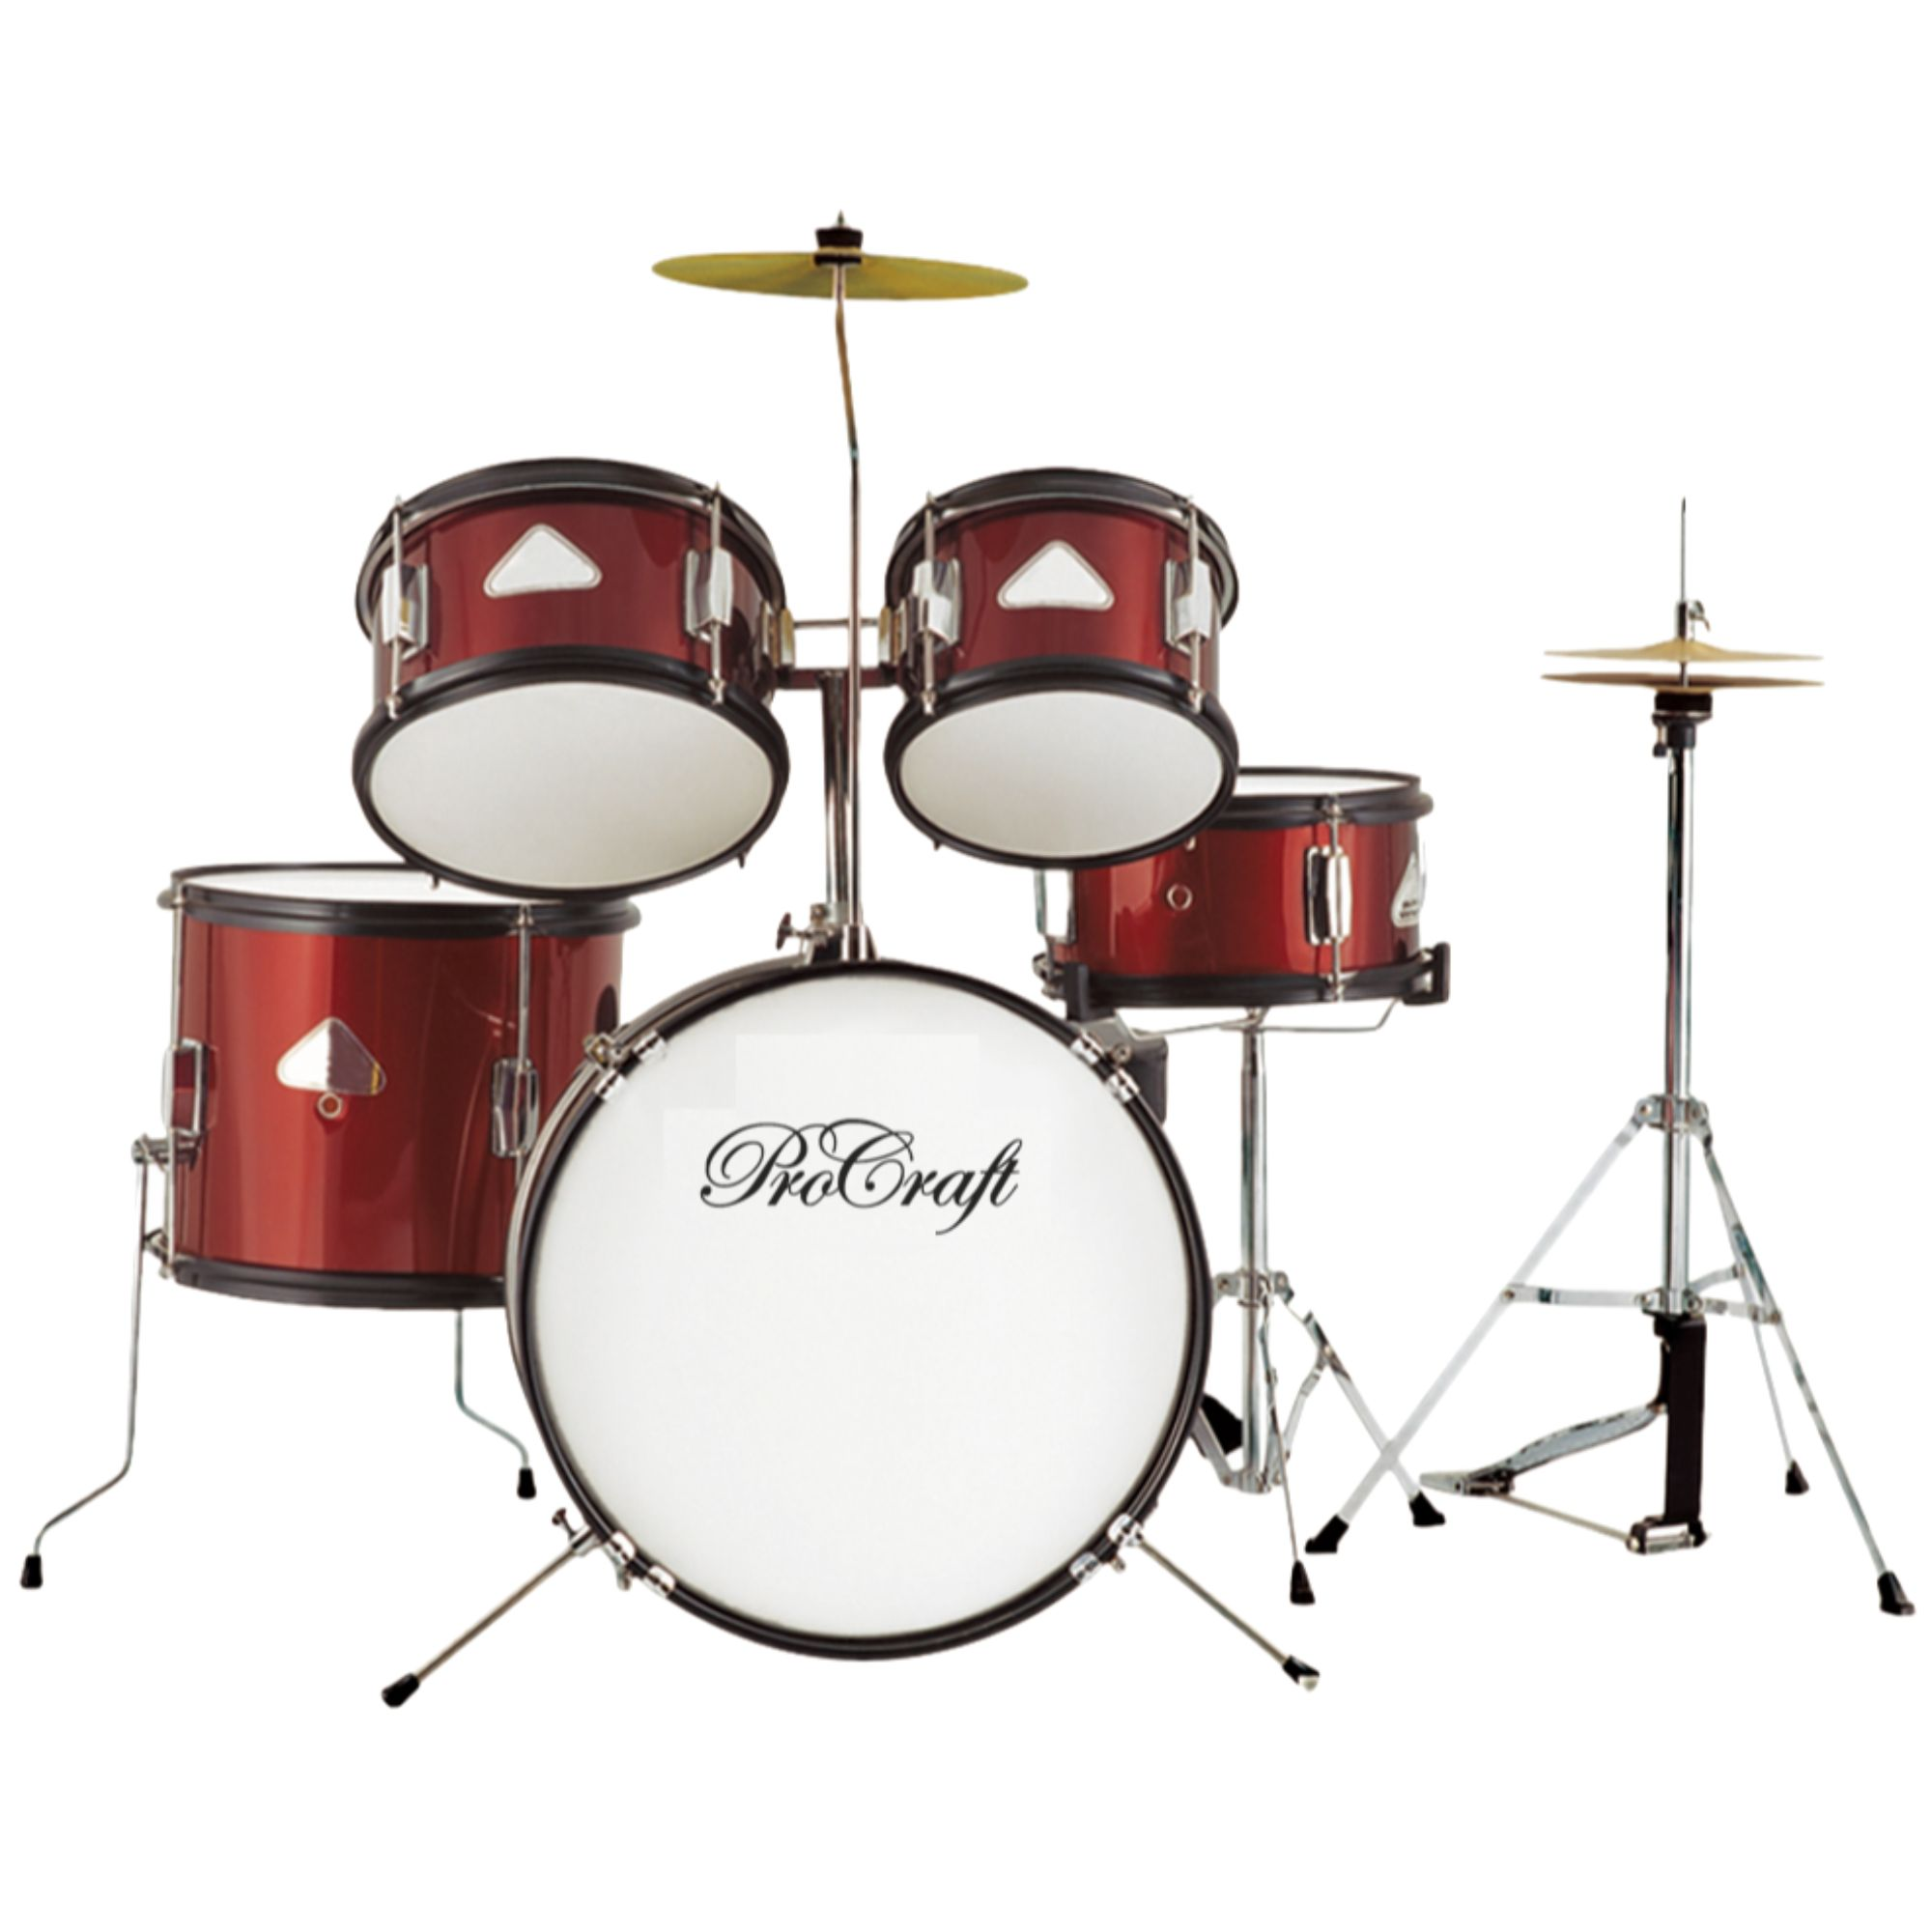 Procraft Junior Drum kit PRJ 1046